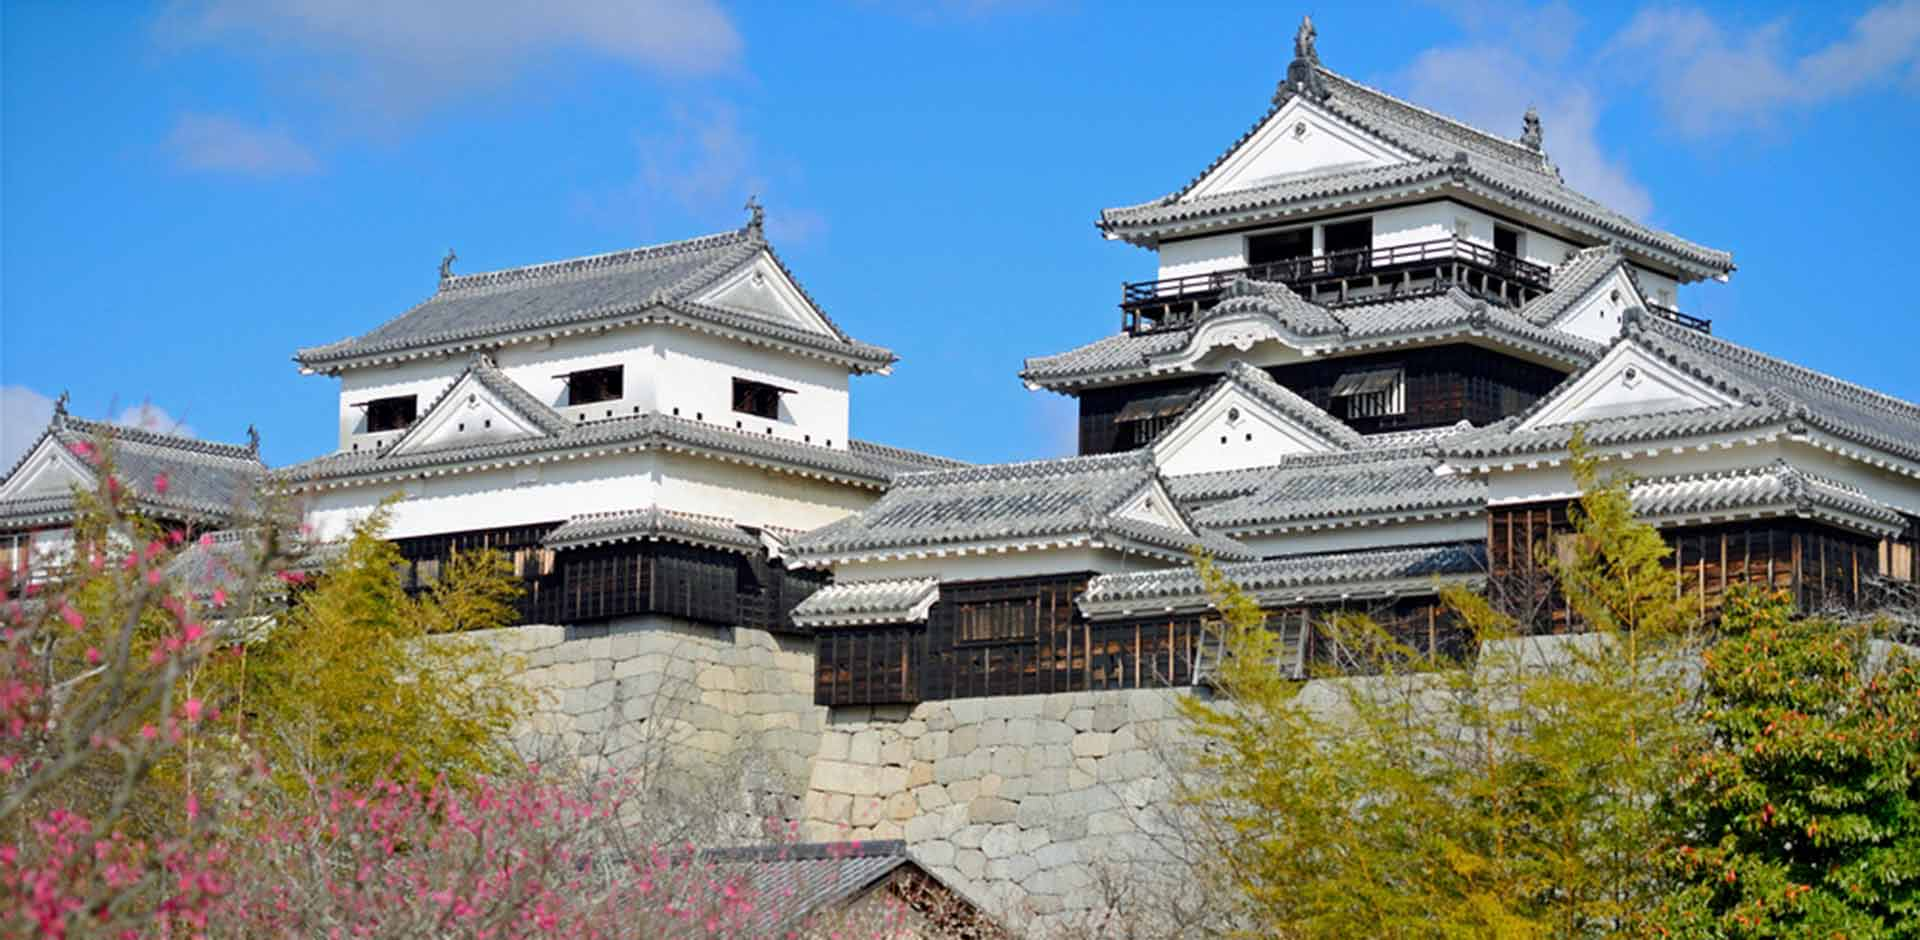 Imabari Japan Luxe And Intrepid Asia Remote Lands